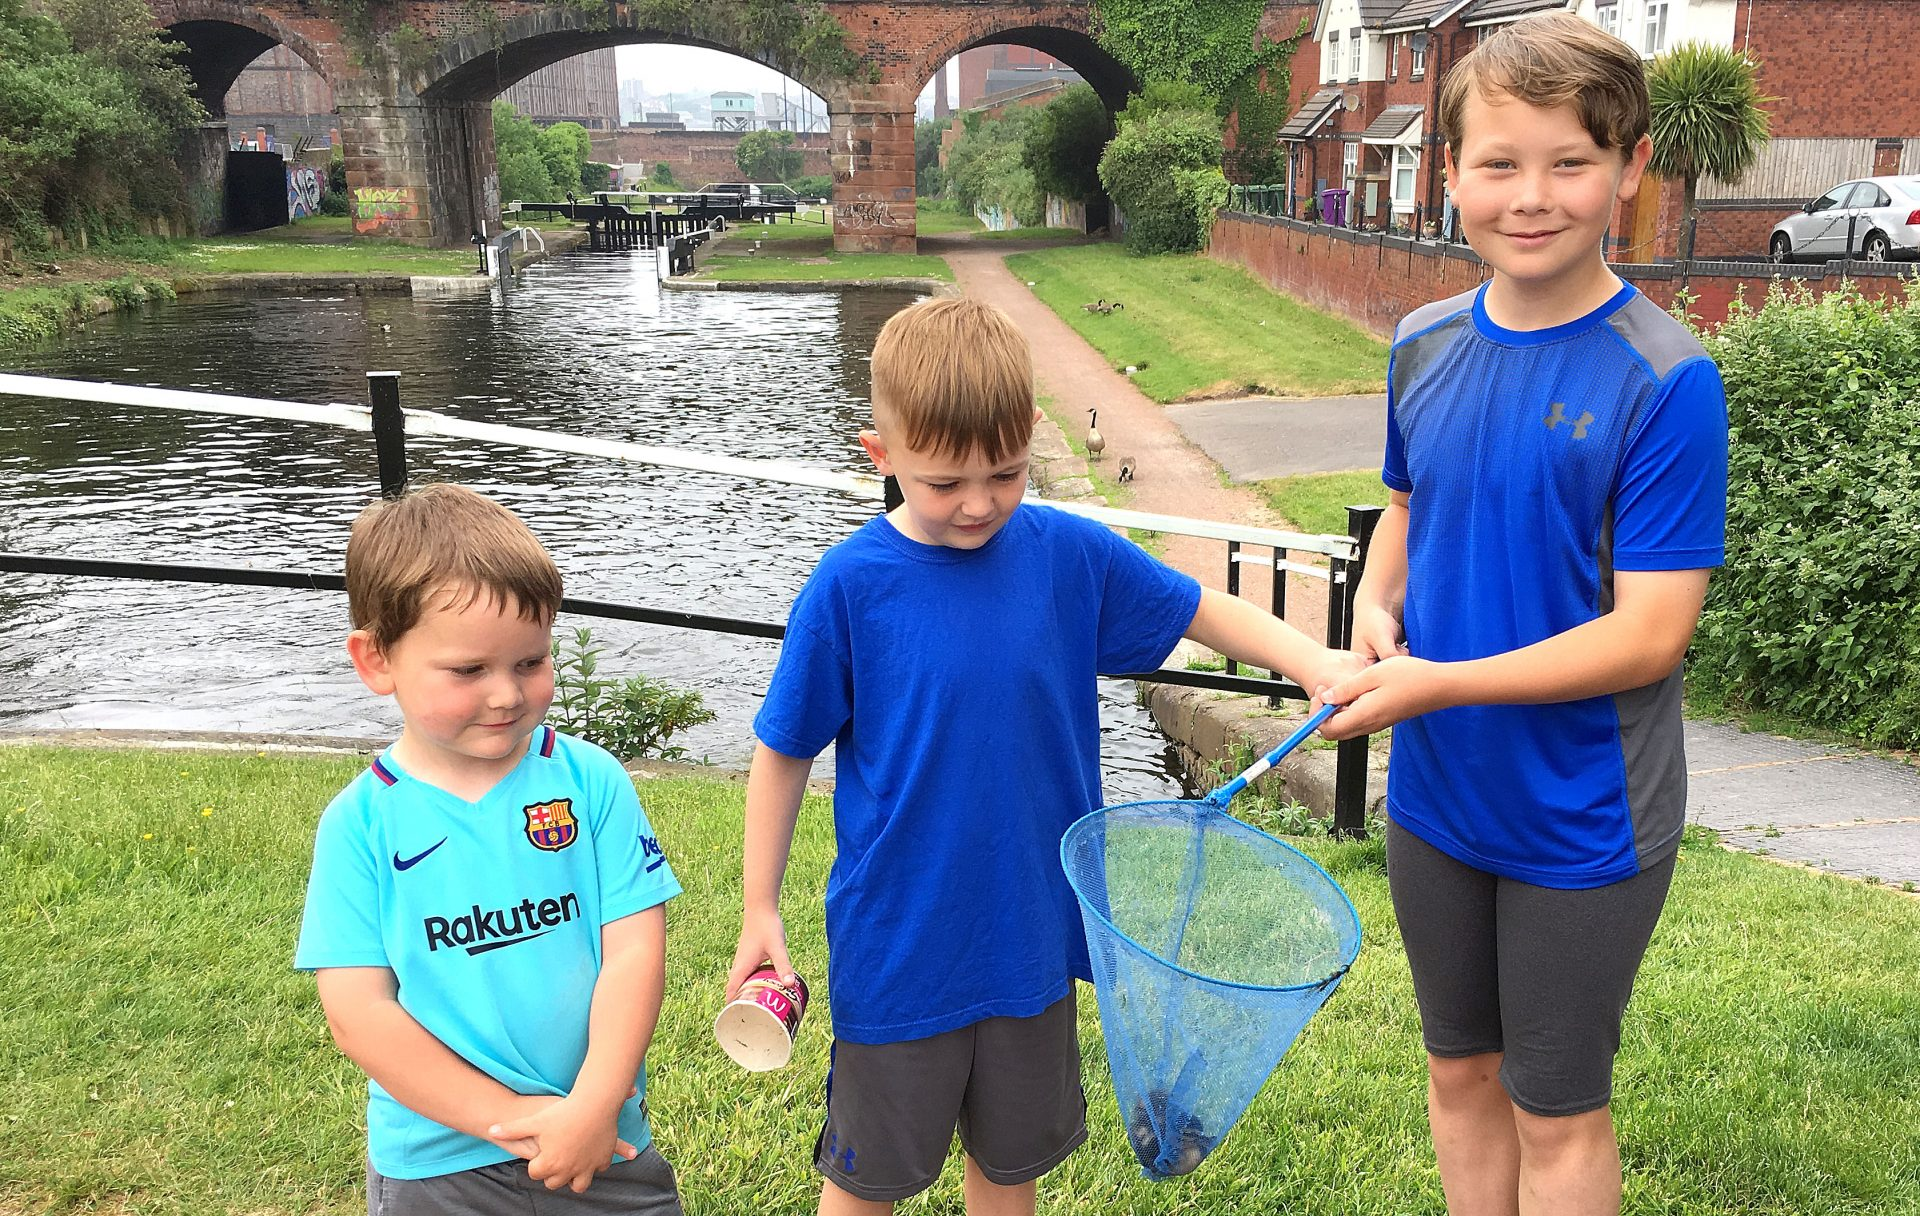 Duckling rescue at the final 3 locks before Liverpool. Well done boys !